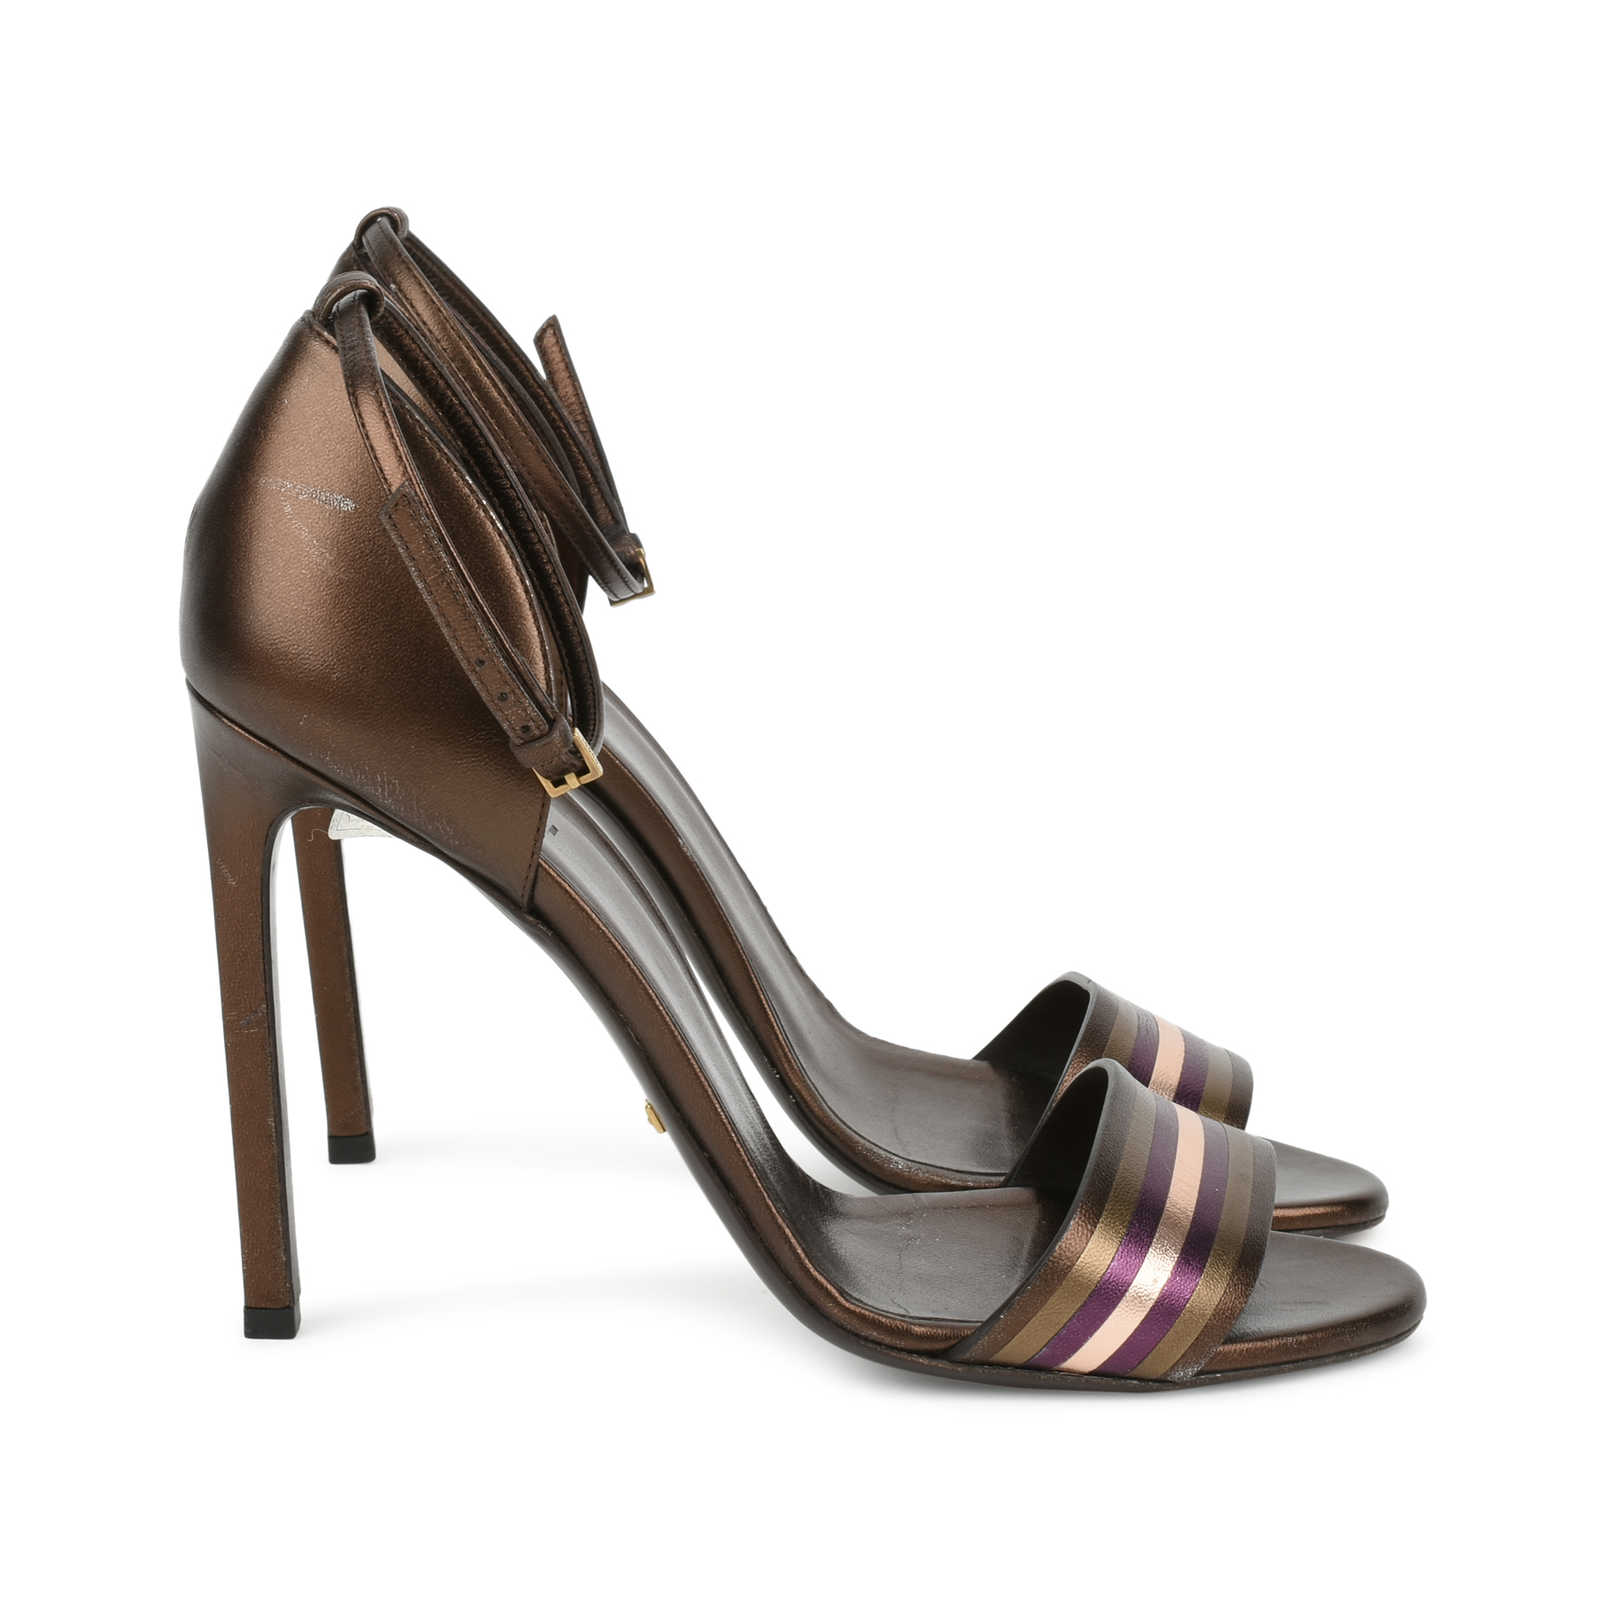 5bc4ab131 ... Authentic Second Hand Gucci Striped Bronze Sandals (PSS-443-00002) -  Thumbnail ...